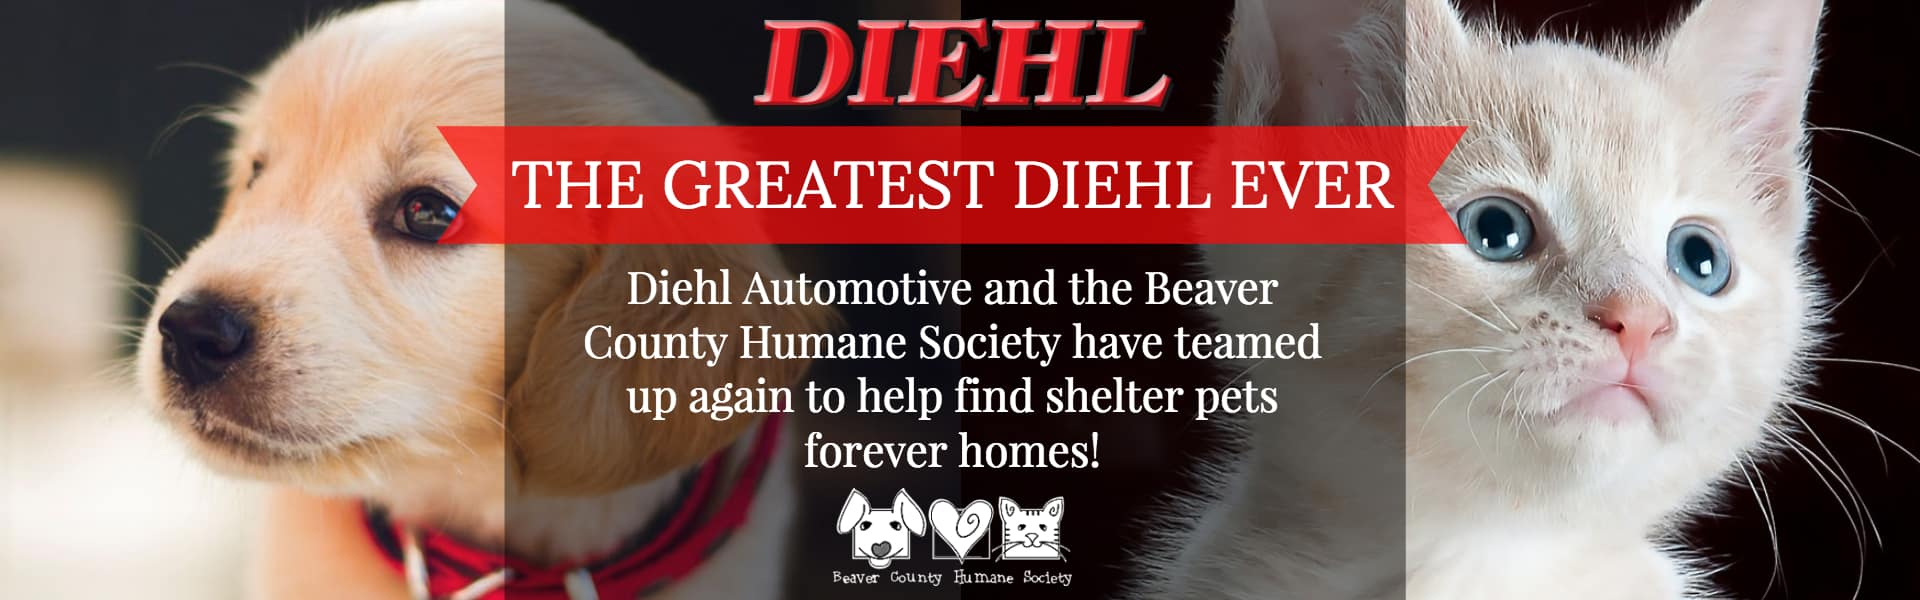 greatest diehl ever beaver county humane society adoption pet rescue dogs cats bunny puppy kitty volunteer shelter